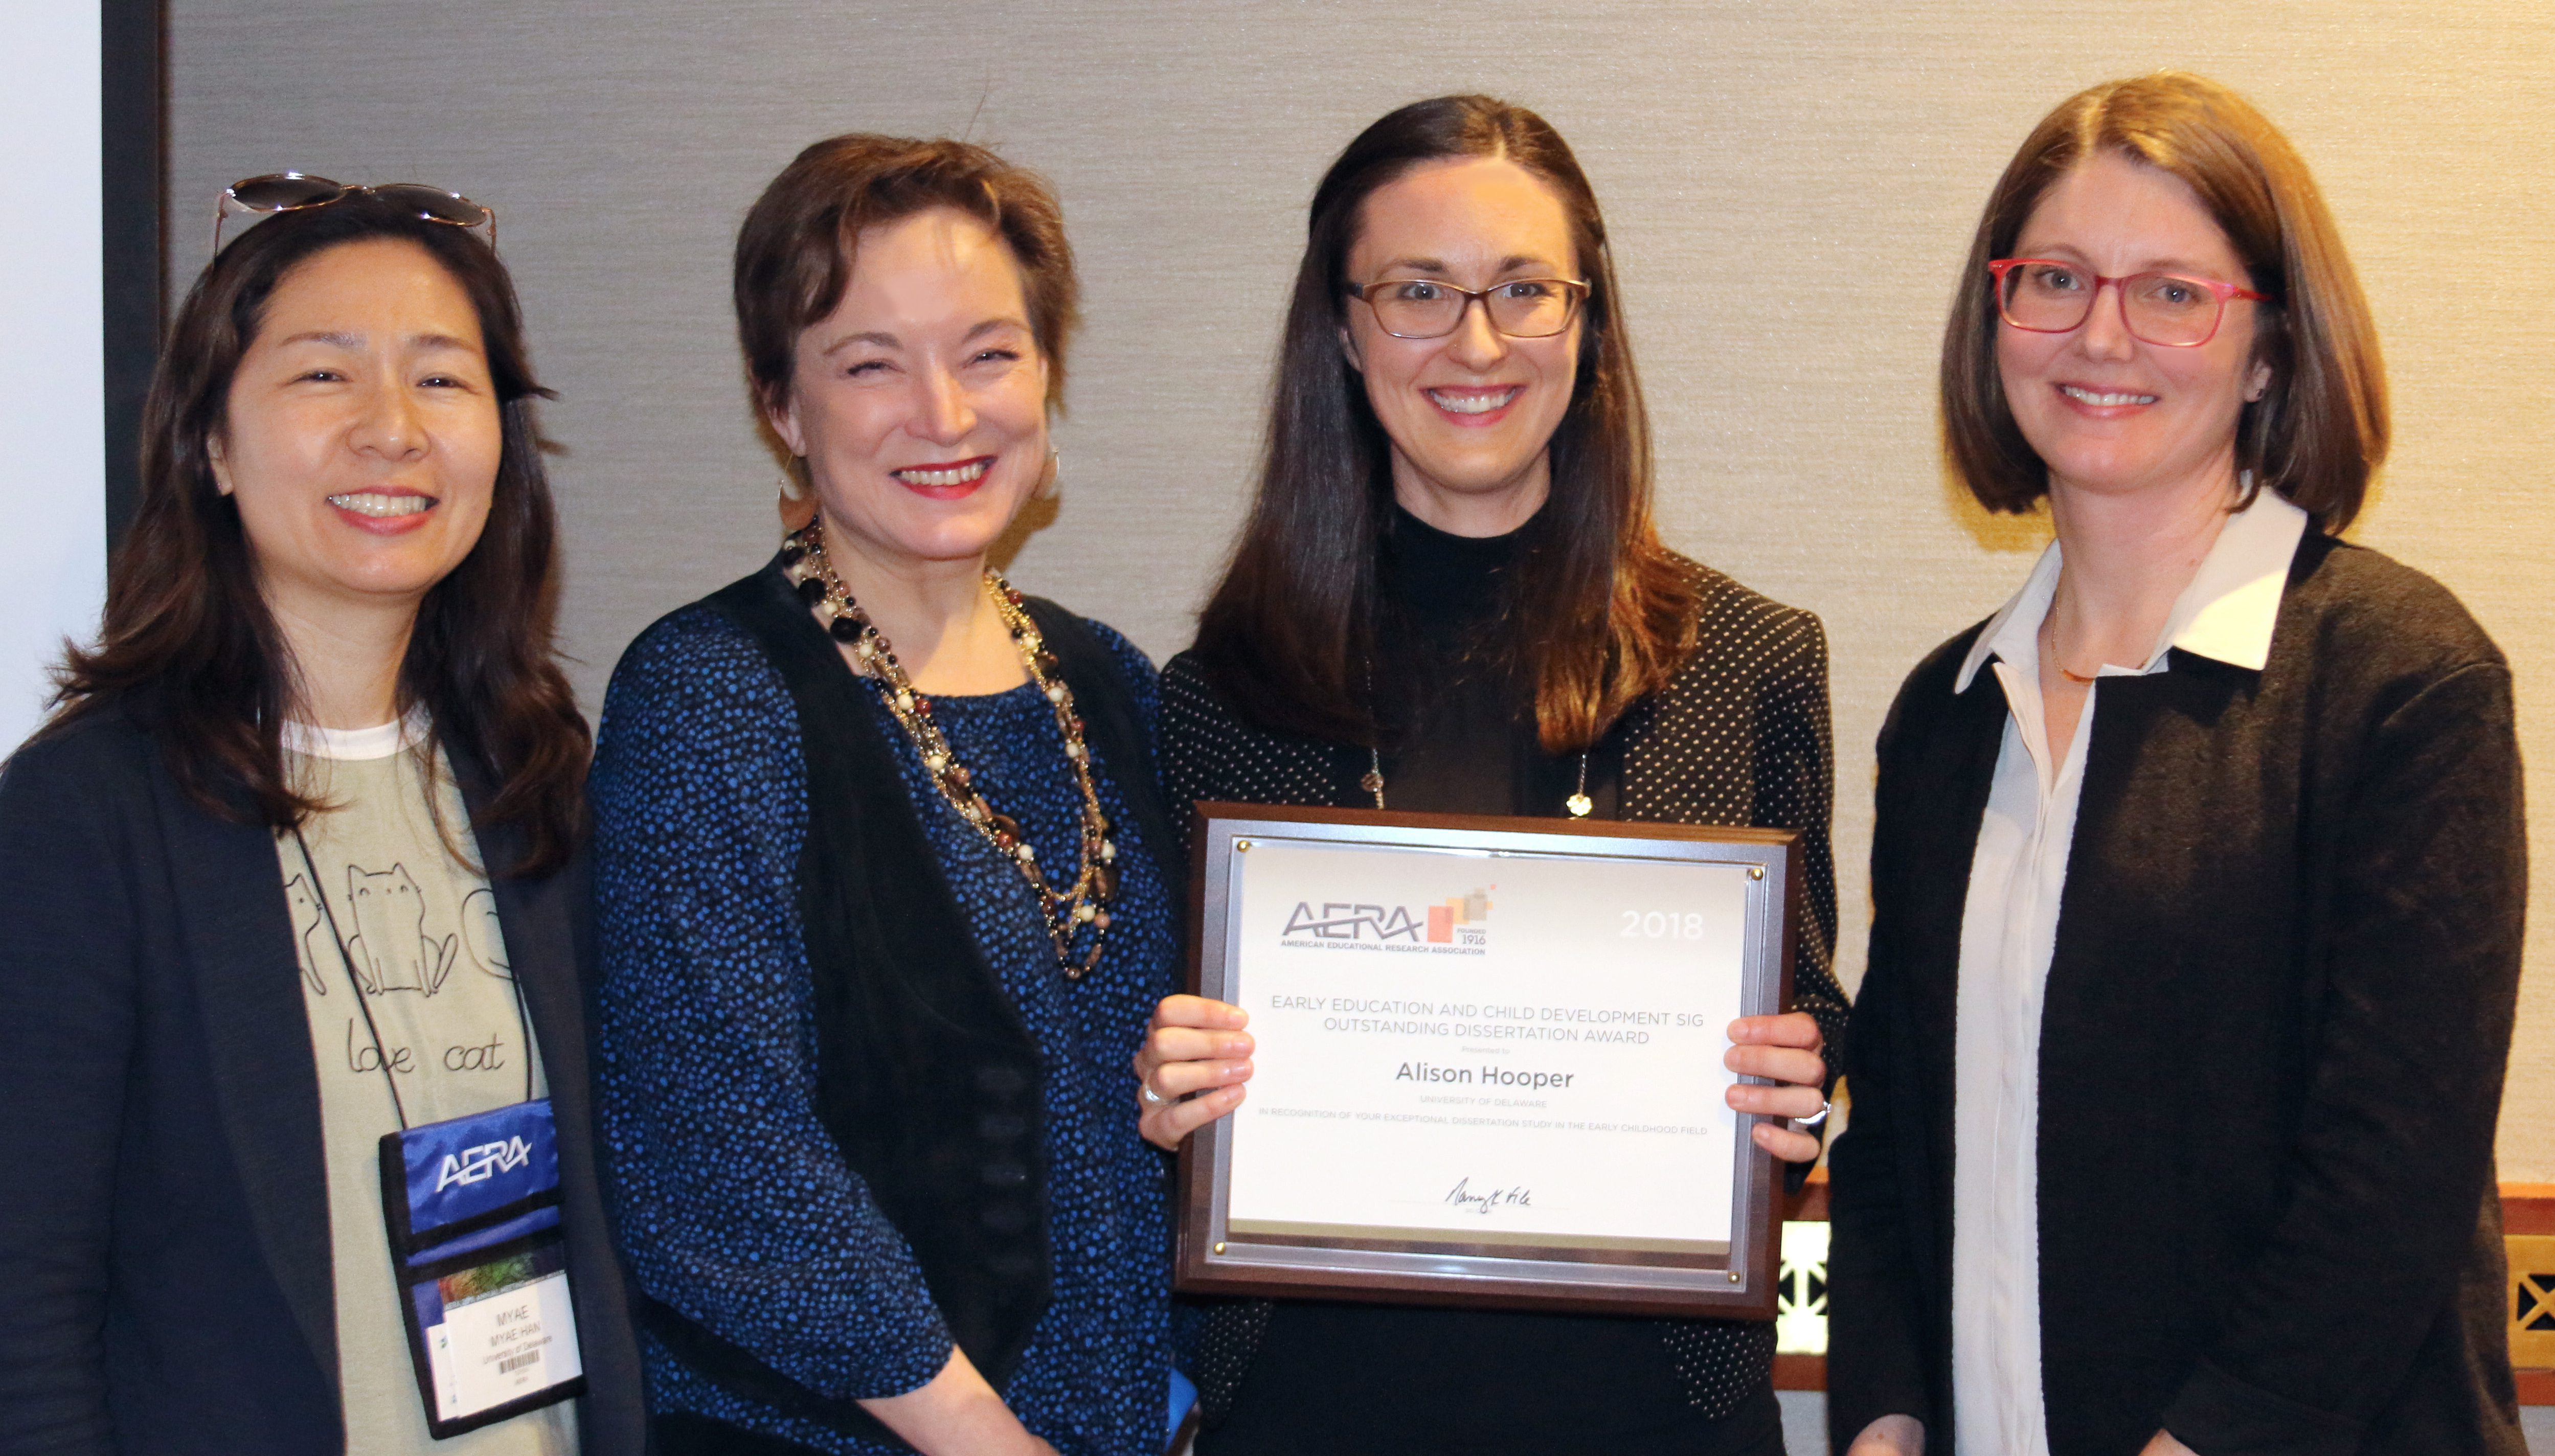 Alison Hooper and HDFS faculty at AERA award ceremony